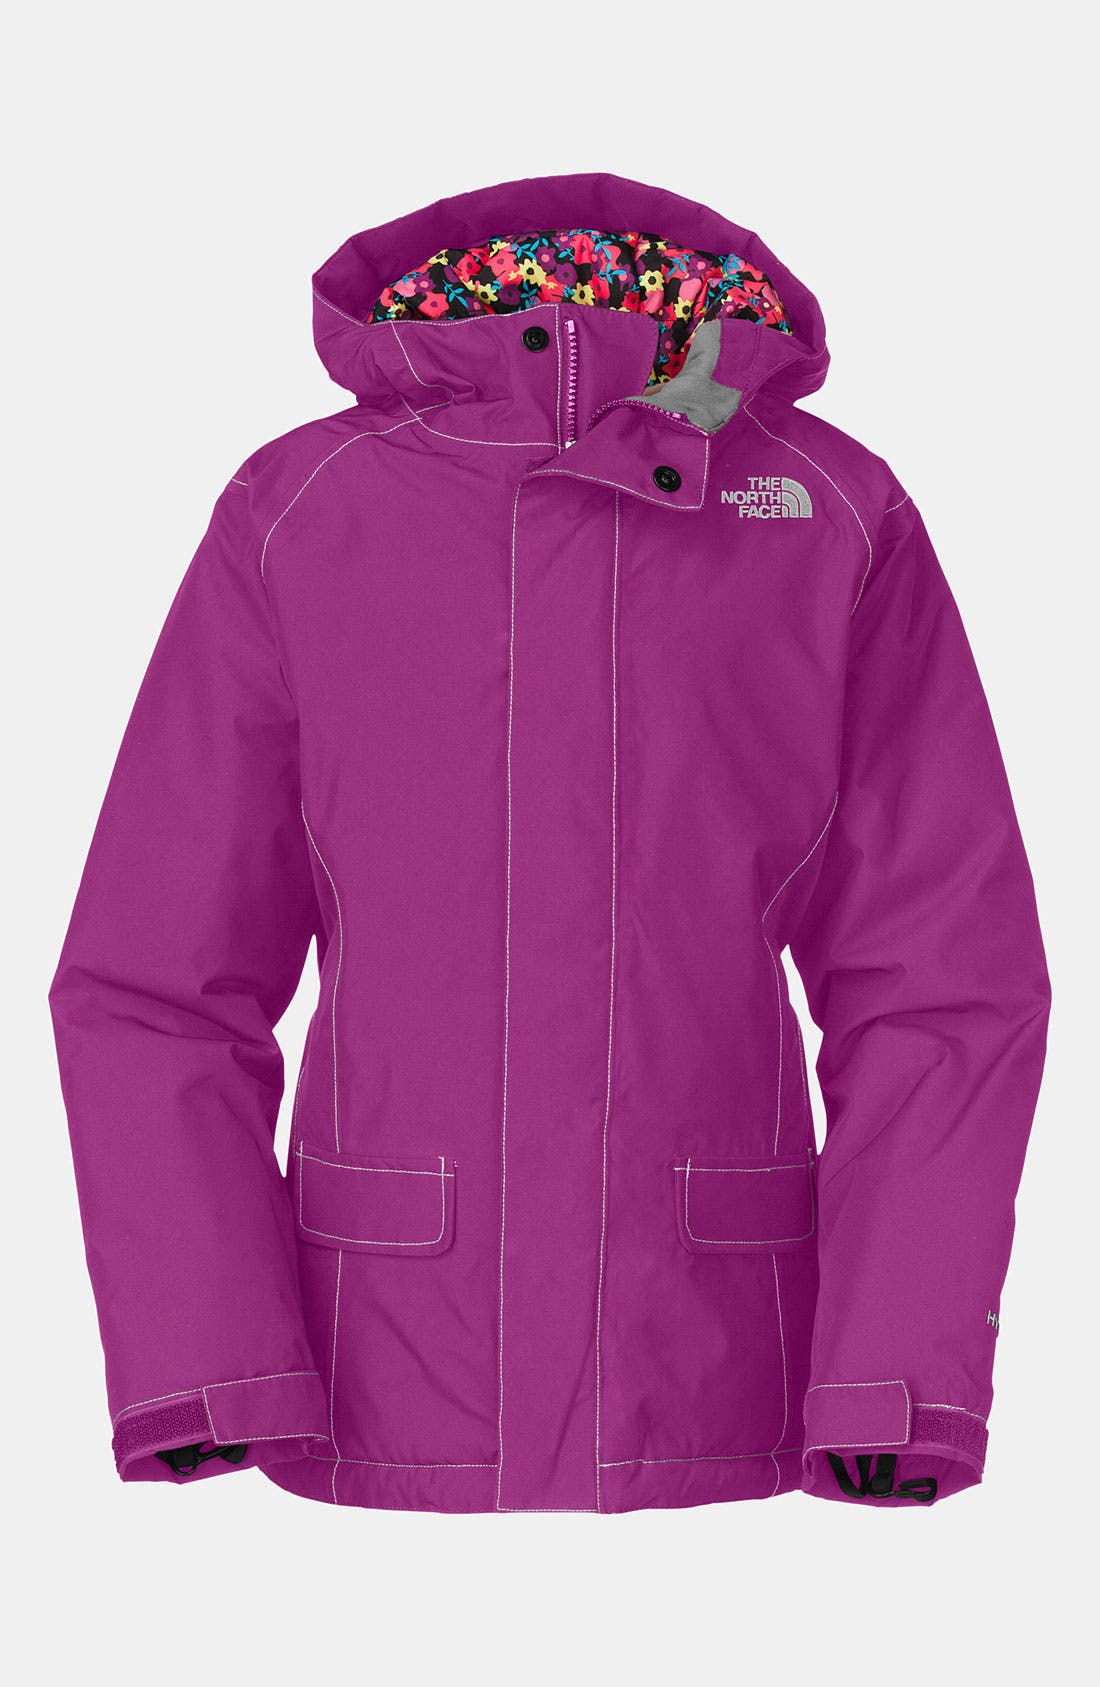 Alternate Image 1 Selected - The North Face 'Cameele' Jacket (Big Girls)